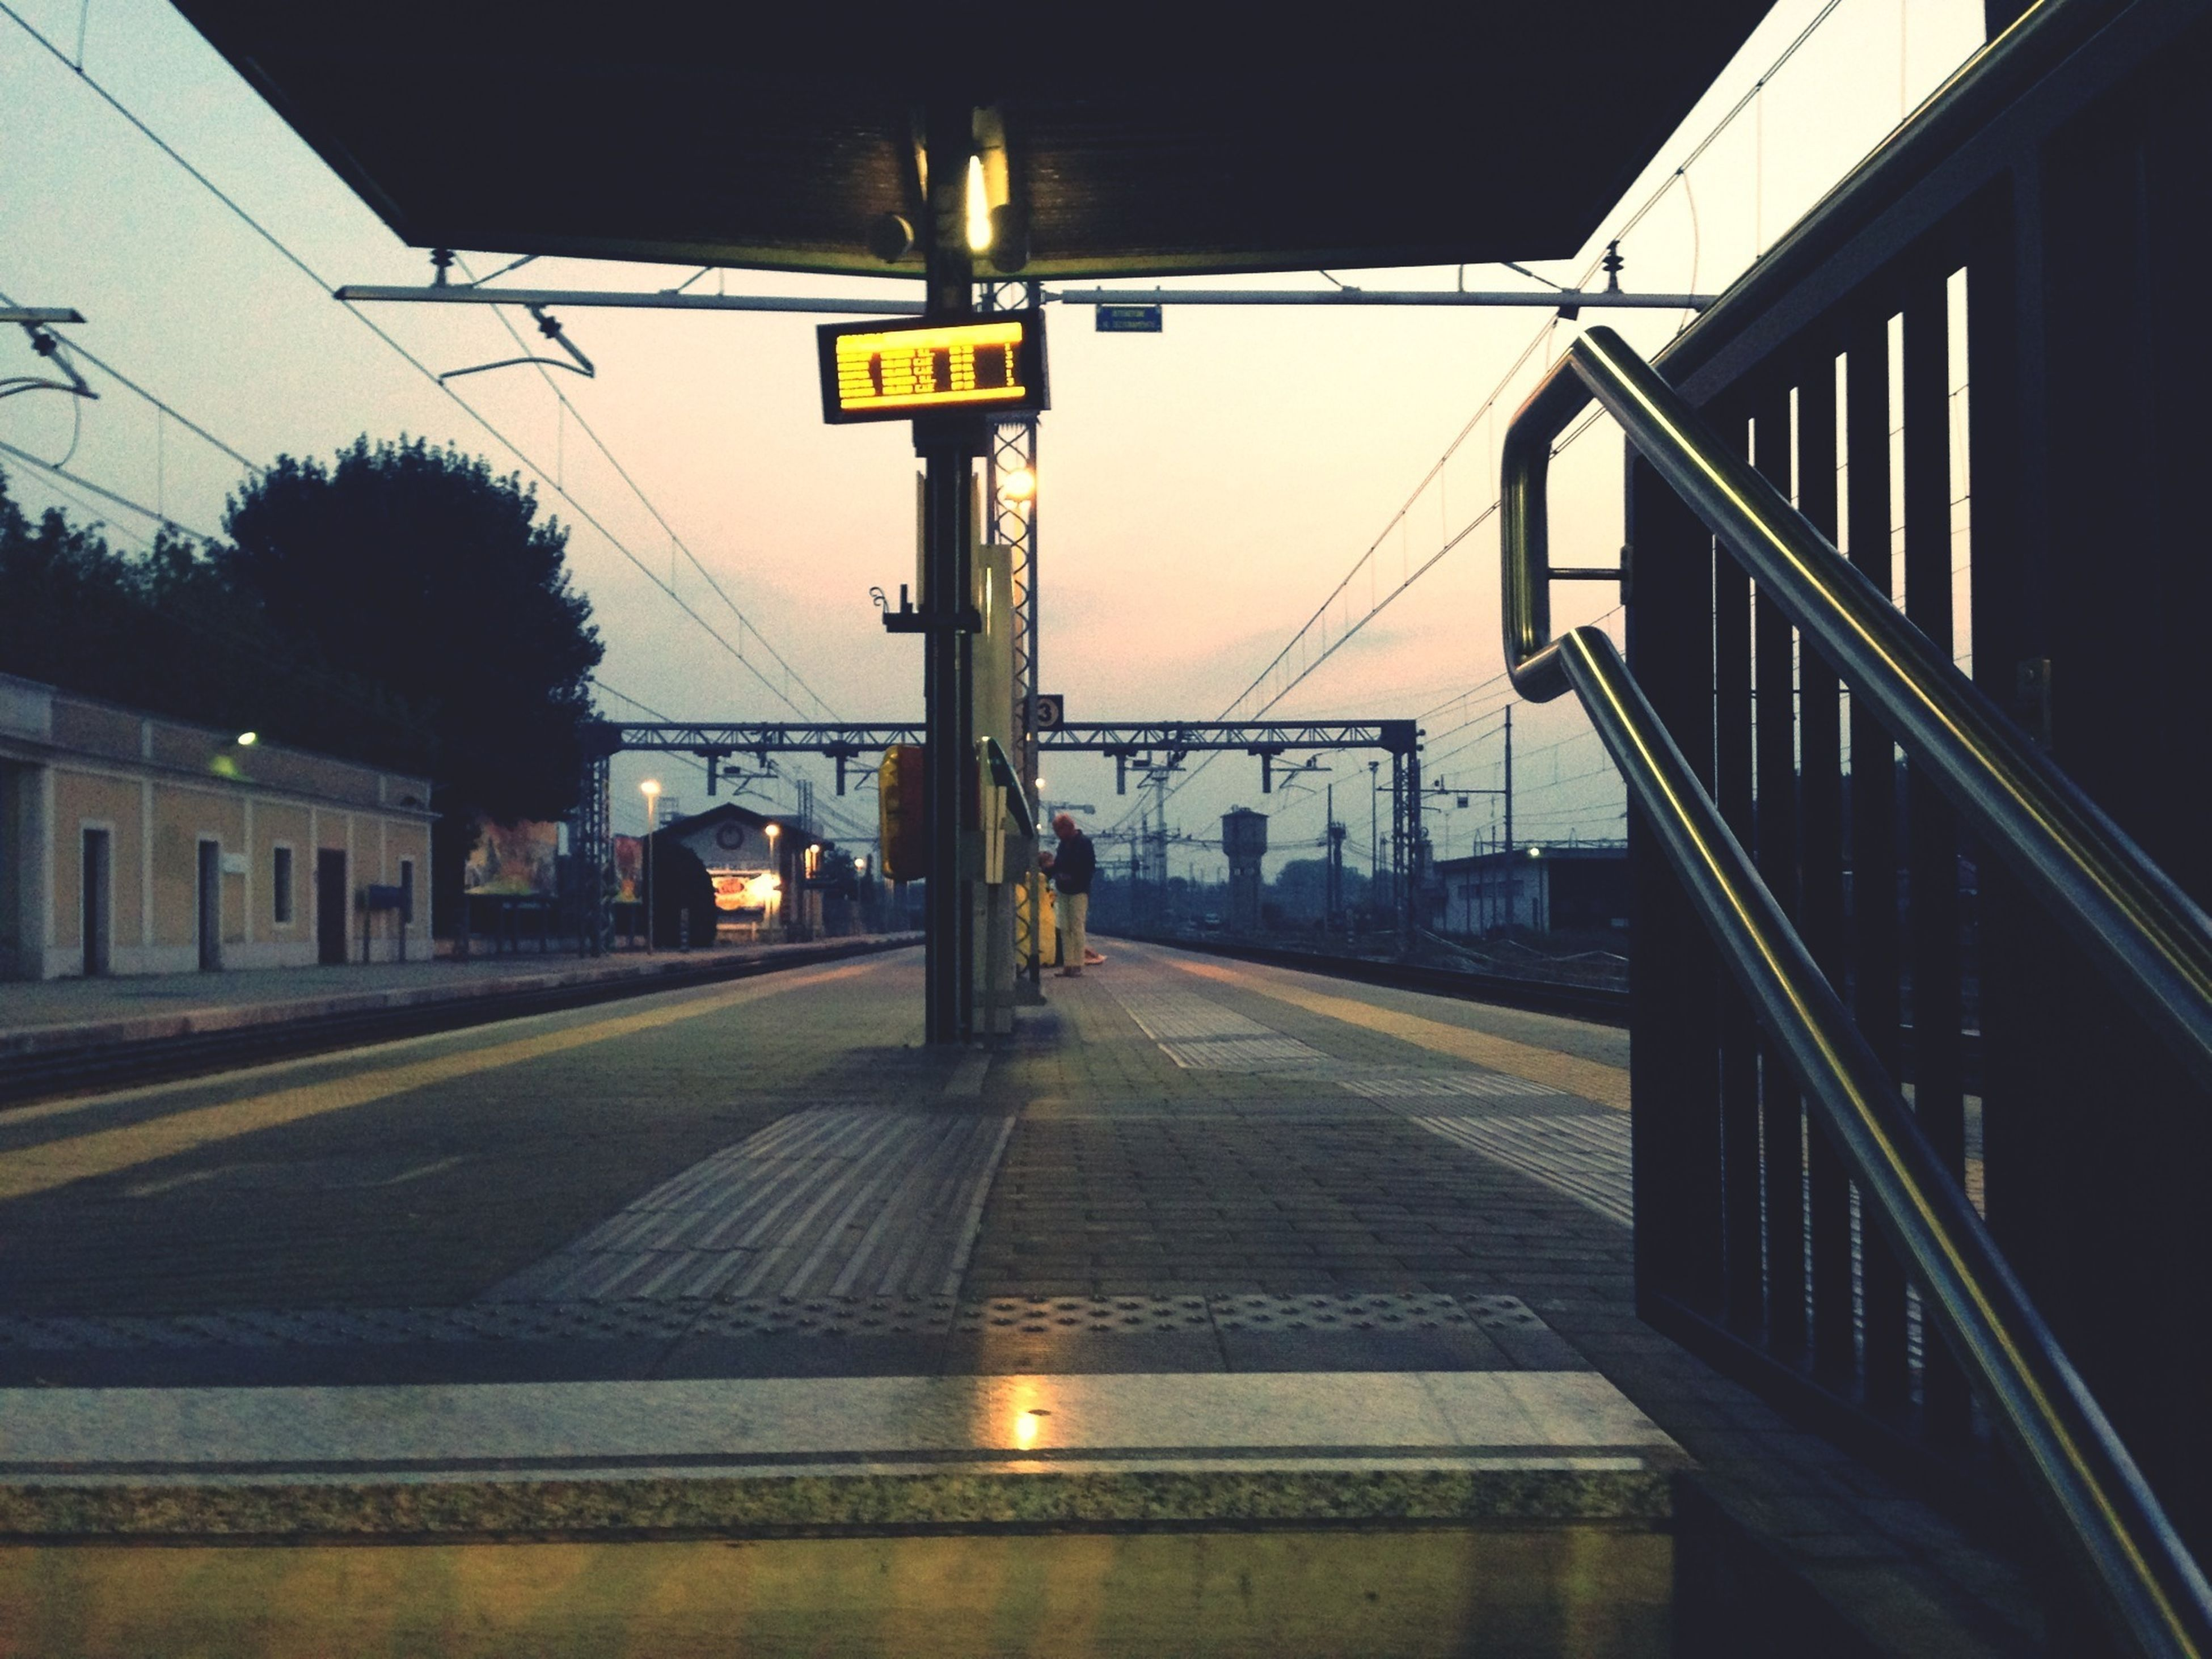 built structure, architecture, transportation, railroad station, rail transportation, public transportation, railroad track, building exterior, railroad station platform, illuminated, city, connection, text, communication, train - vehicle, information sign, the way forward, city life, clear sky, sky